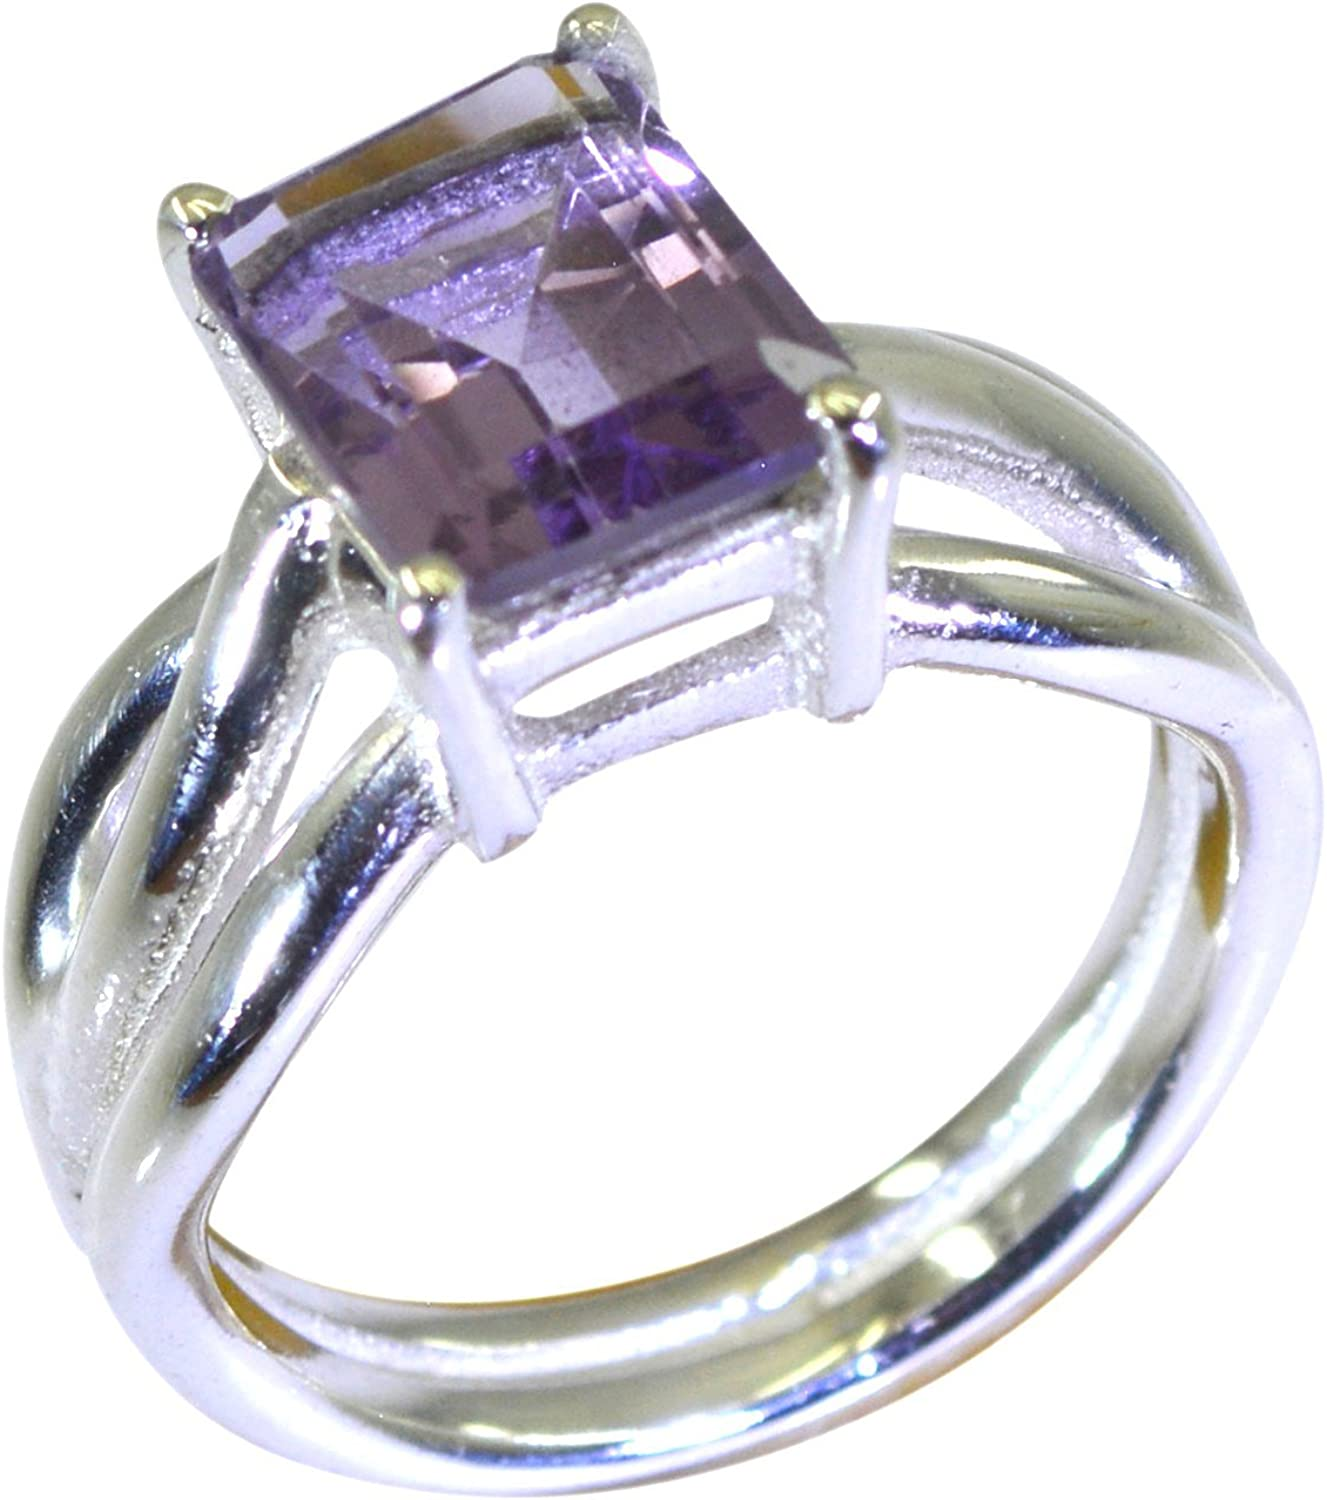 Natural Healing Amethyst Silver Ring For Men February Birthstone Round Shape Size 5,6,7,8,9,10,11,12